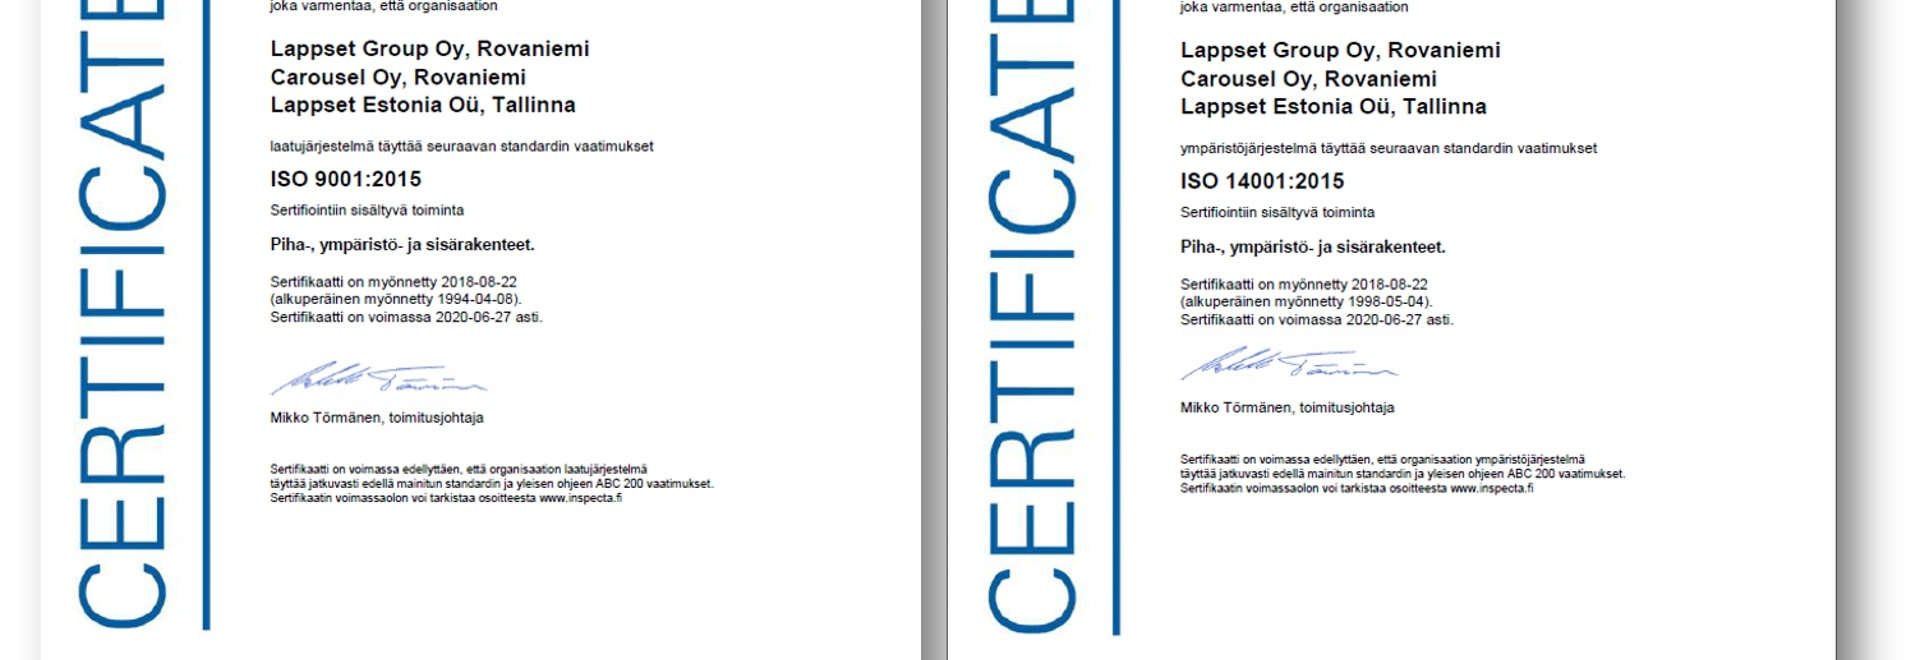 Lappset's quality and environmental management systems were re-audited successfully